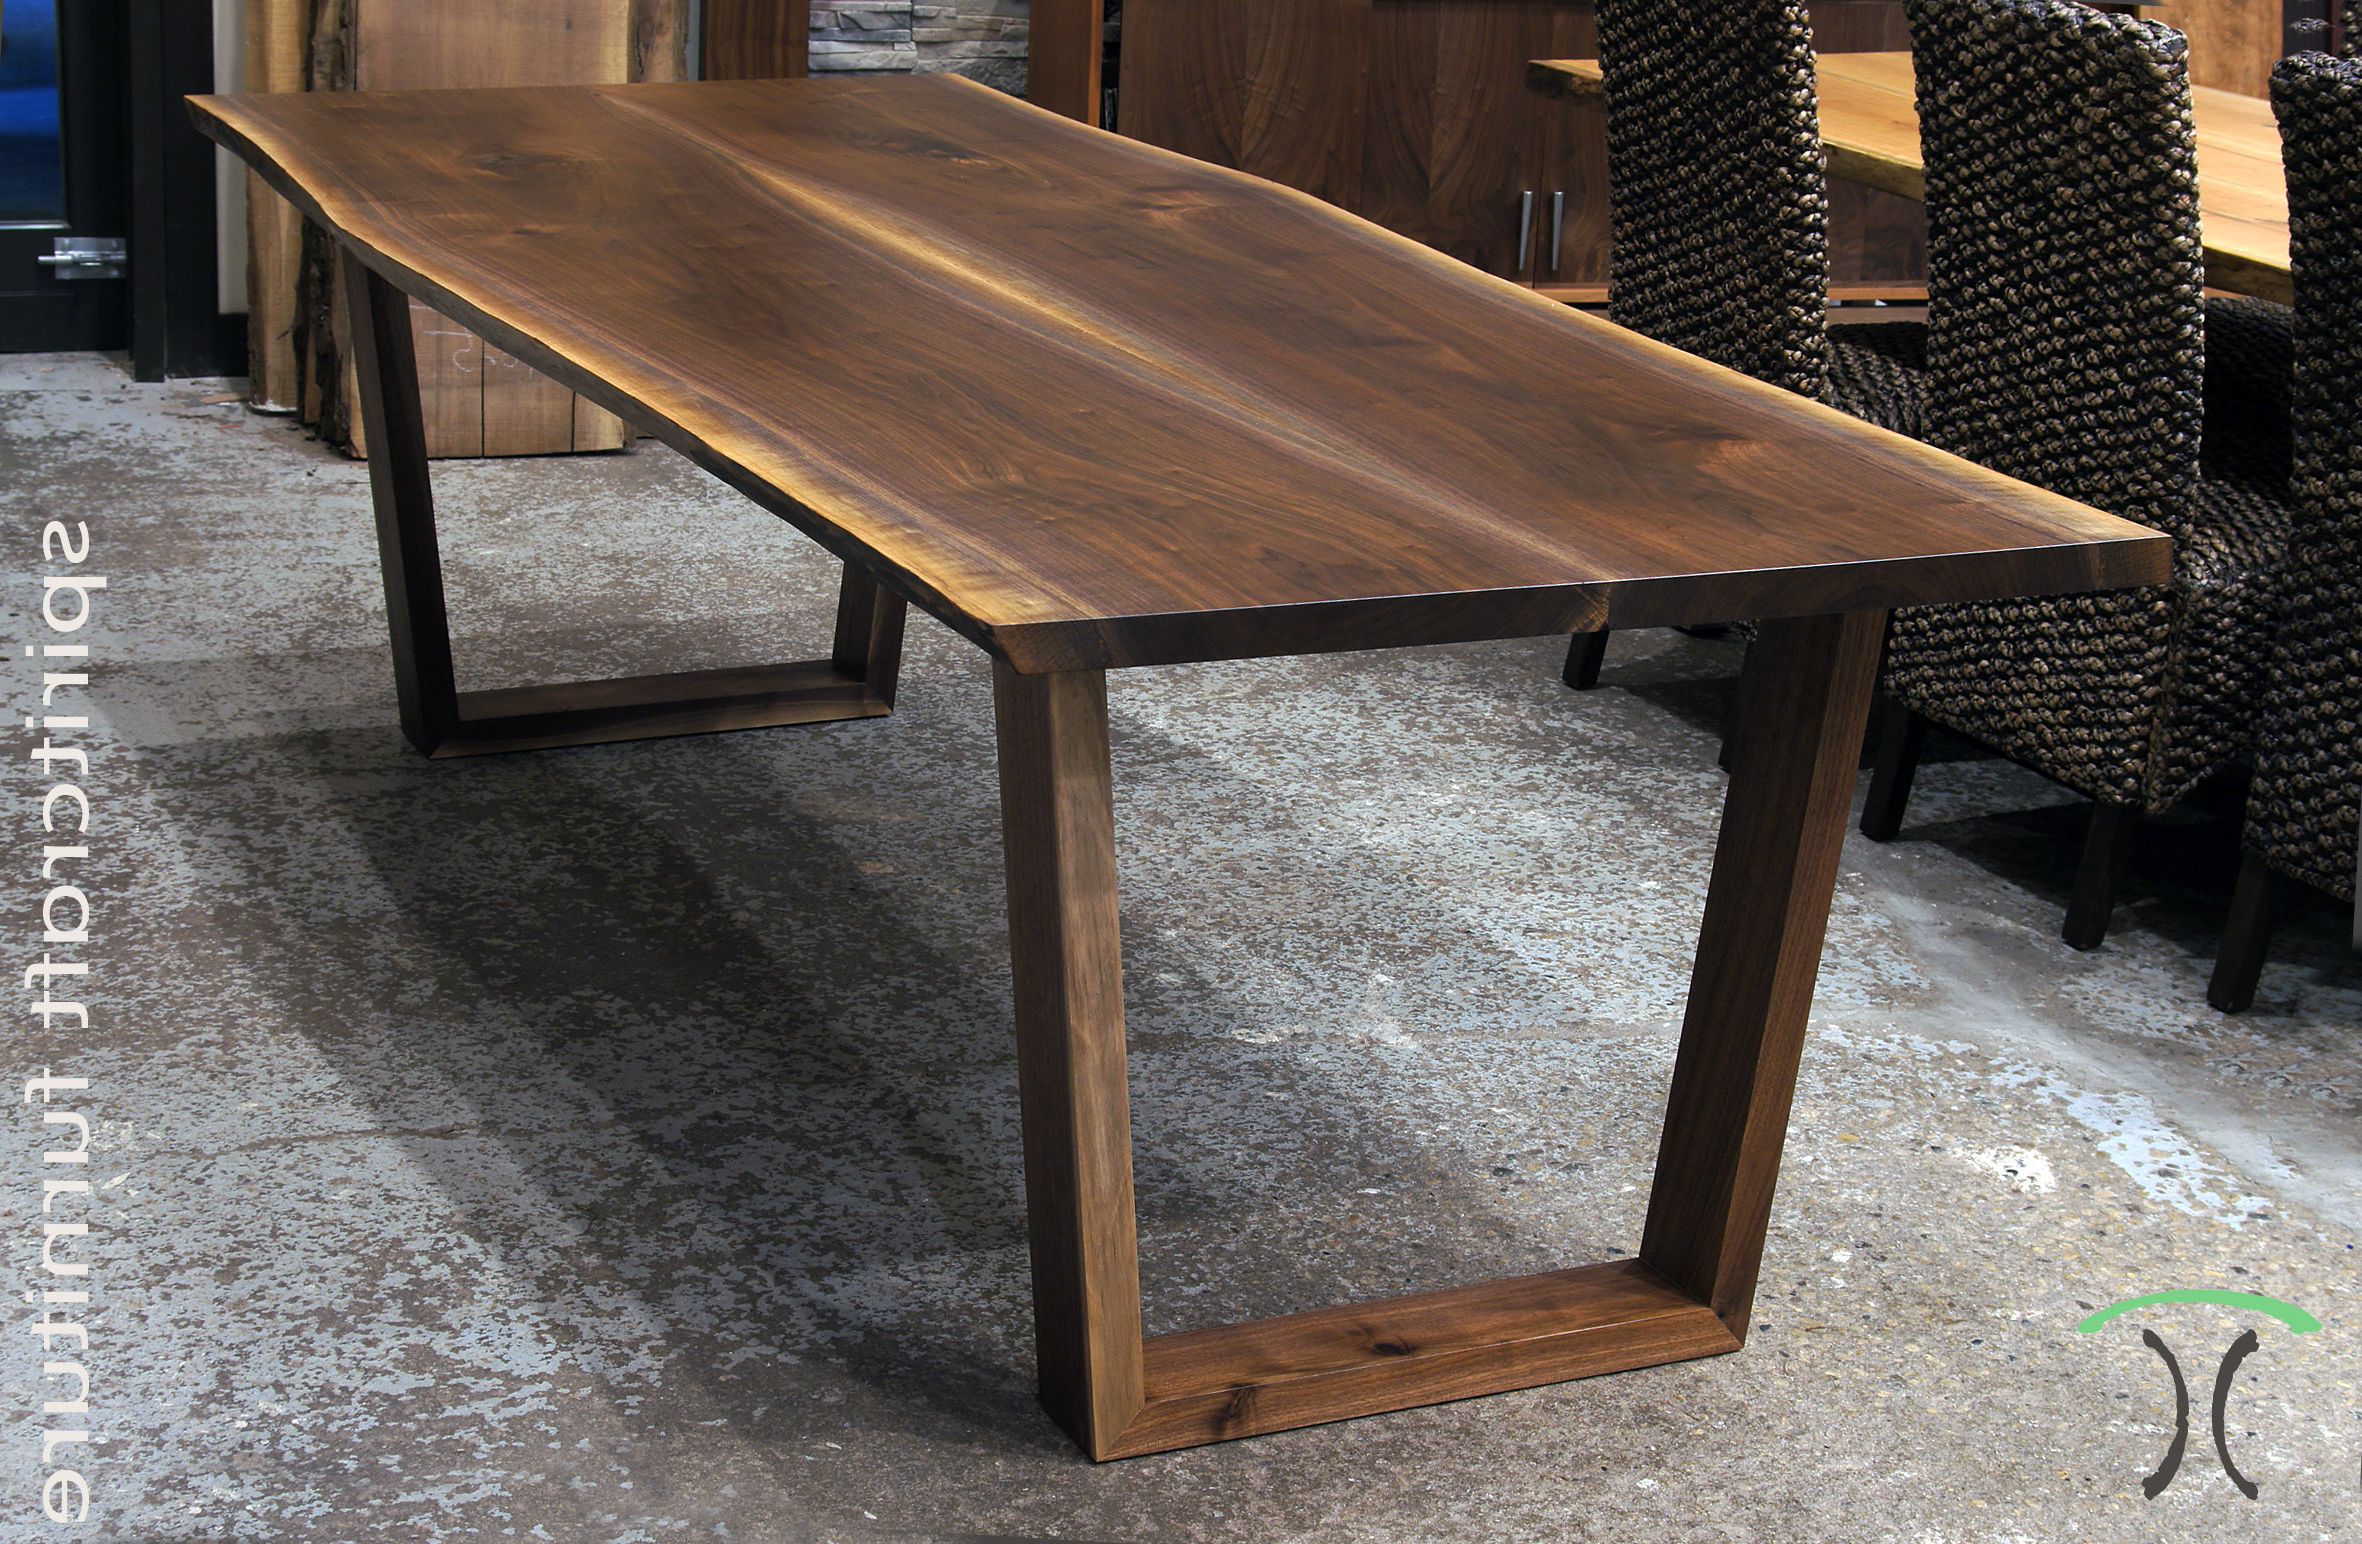 Trendy Walnut Finish Live Edge Wood Contemporary Dining Tables Intended For Live Edge Slab Dining Tables, Walnut Slabs And Tops (View 18 of 25)